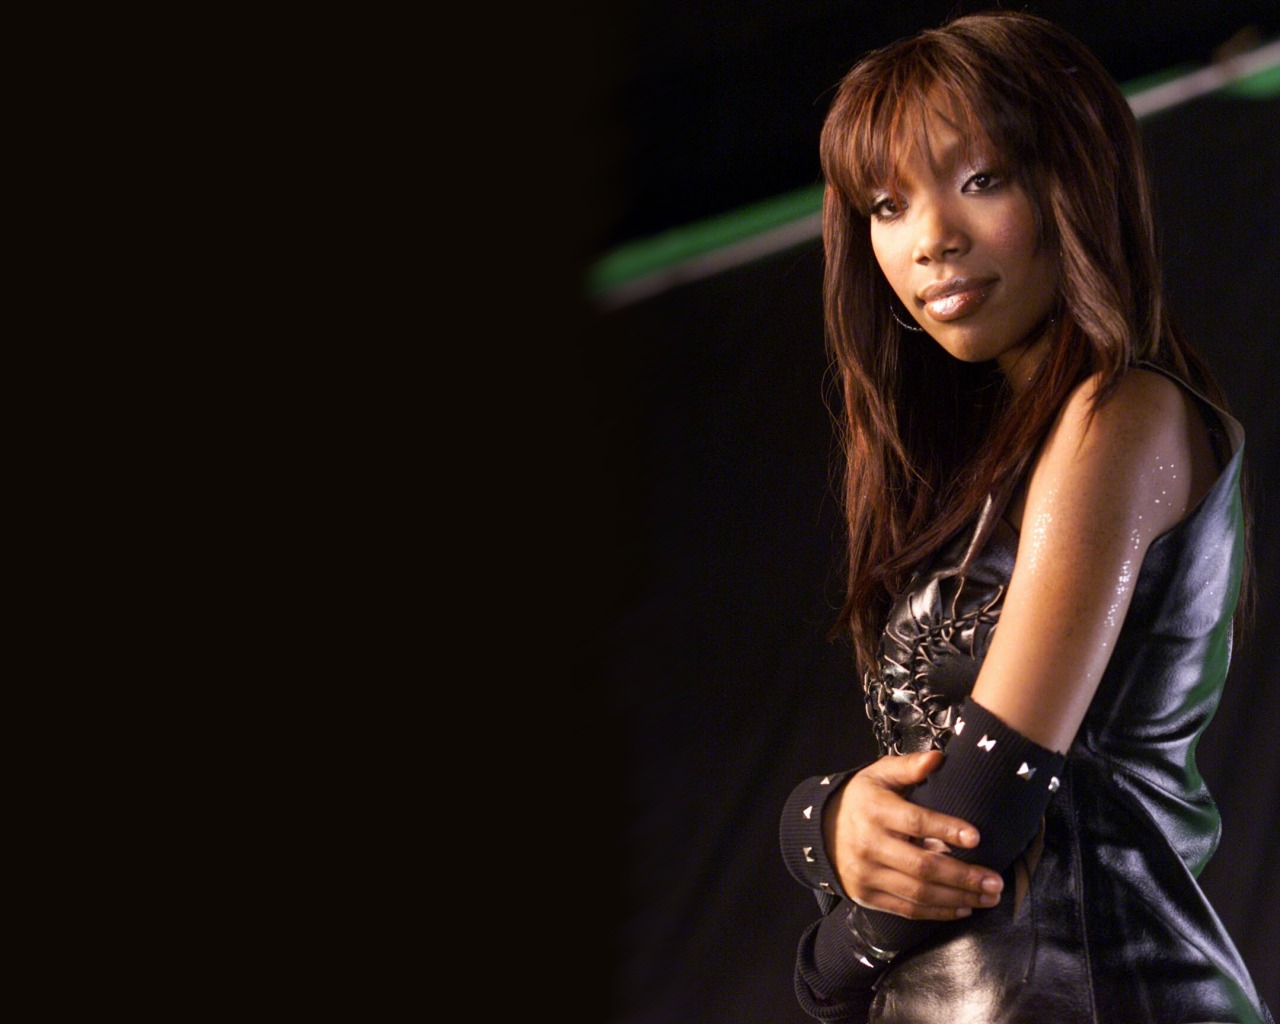 Brandy_Norwood_22_1280x1024.jpg